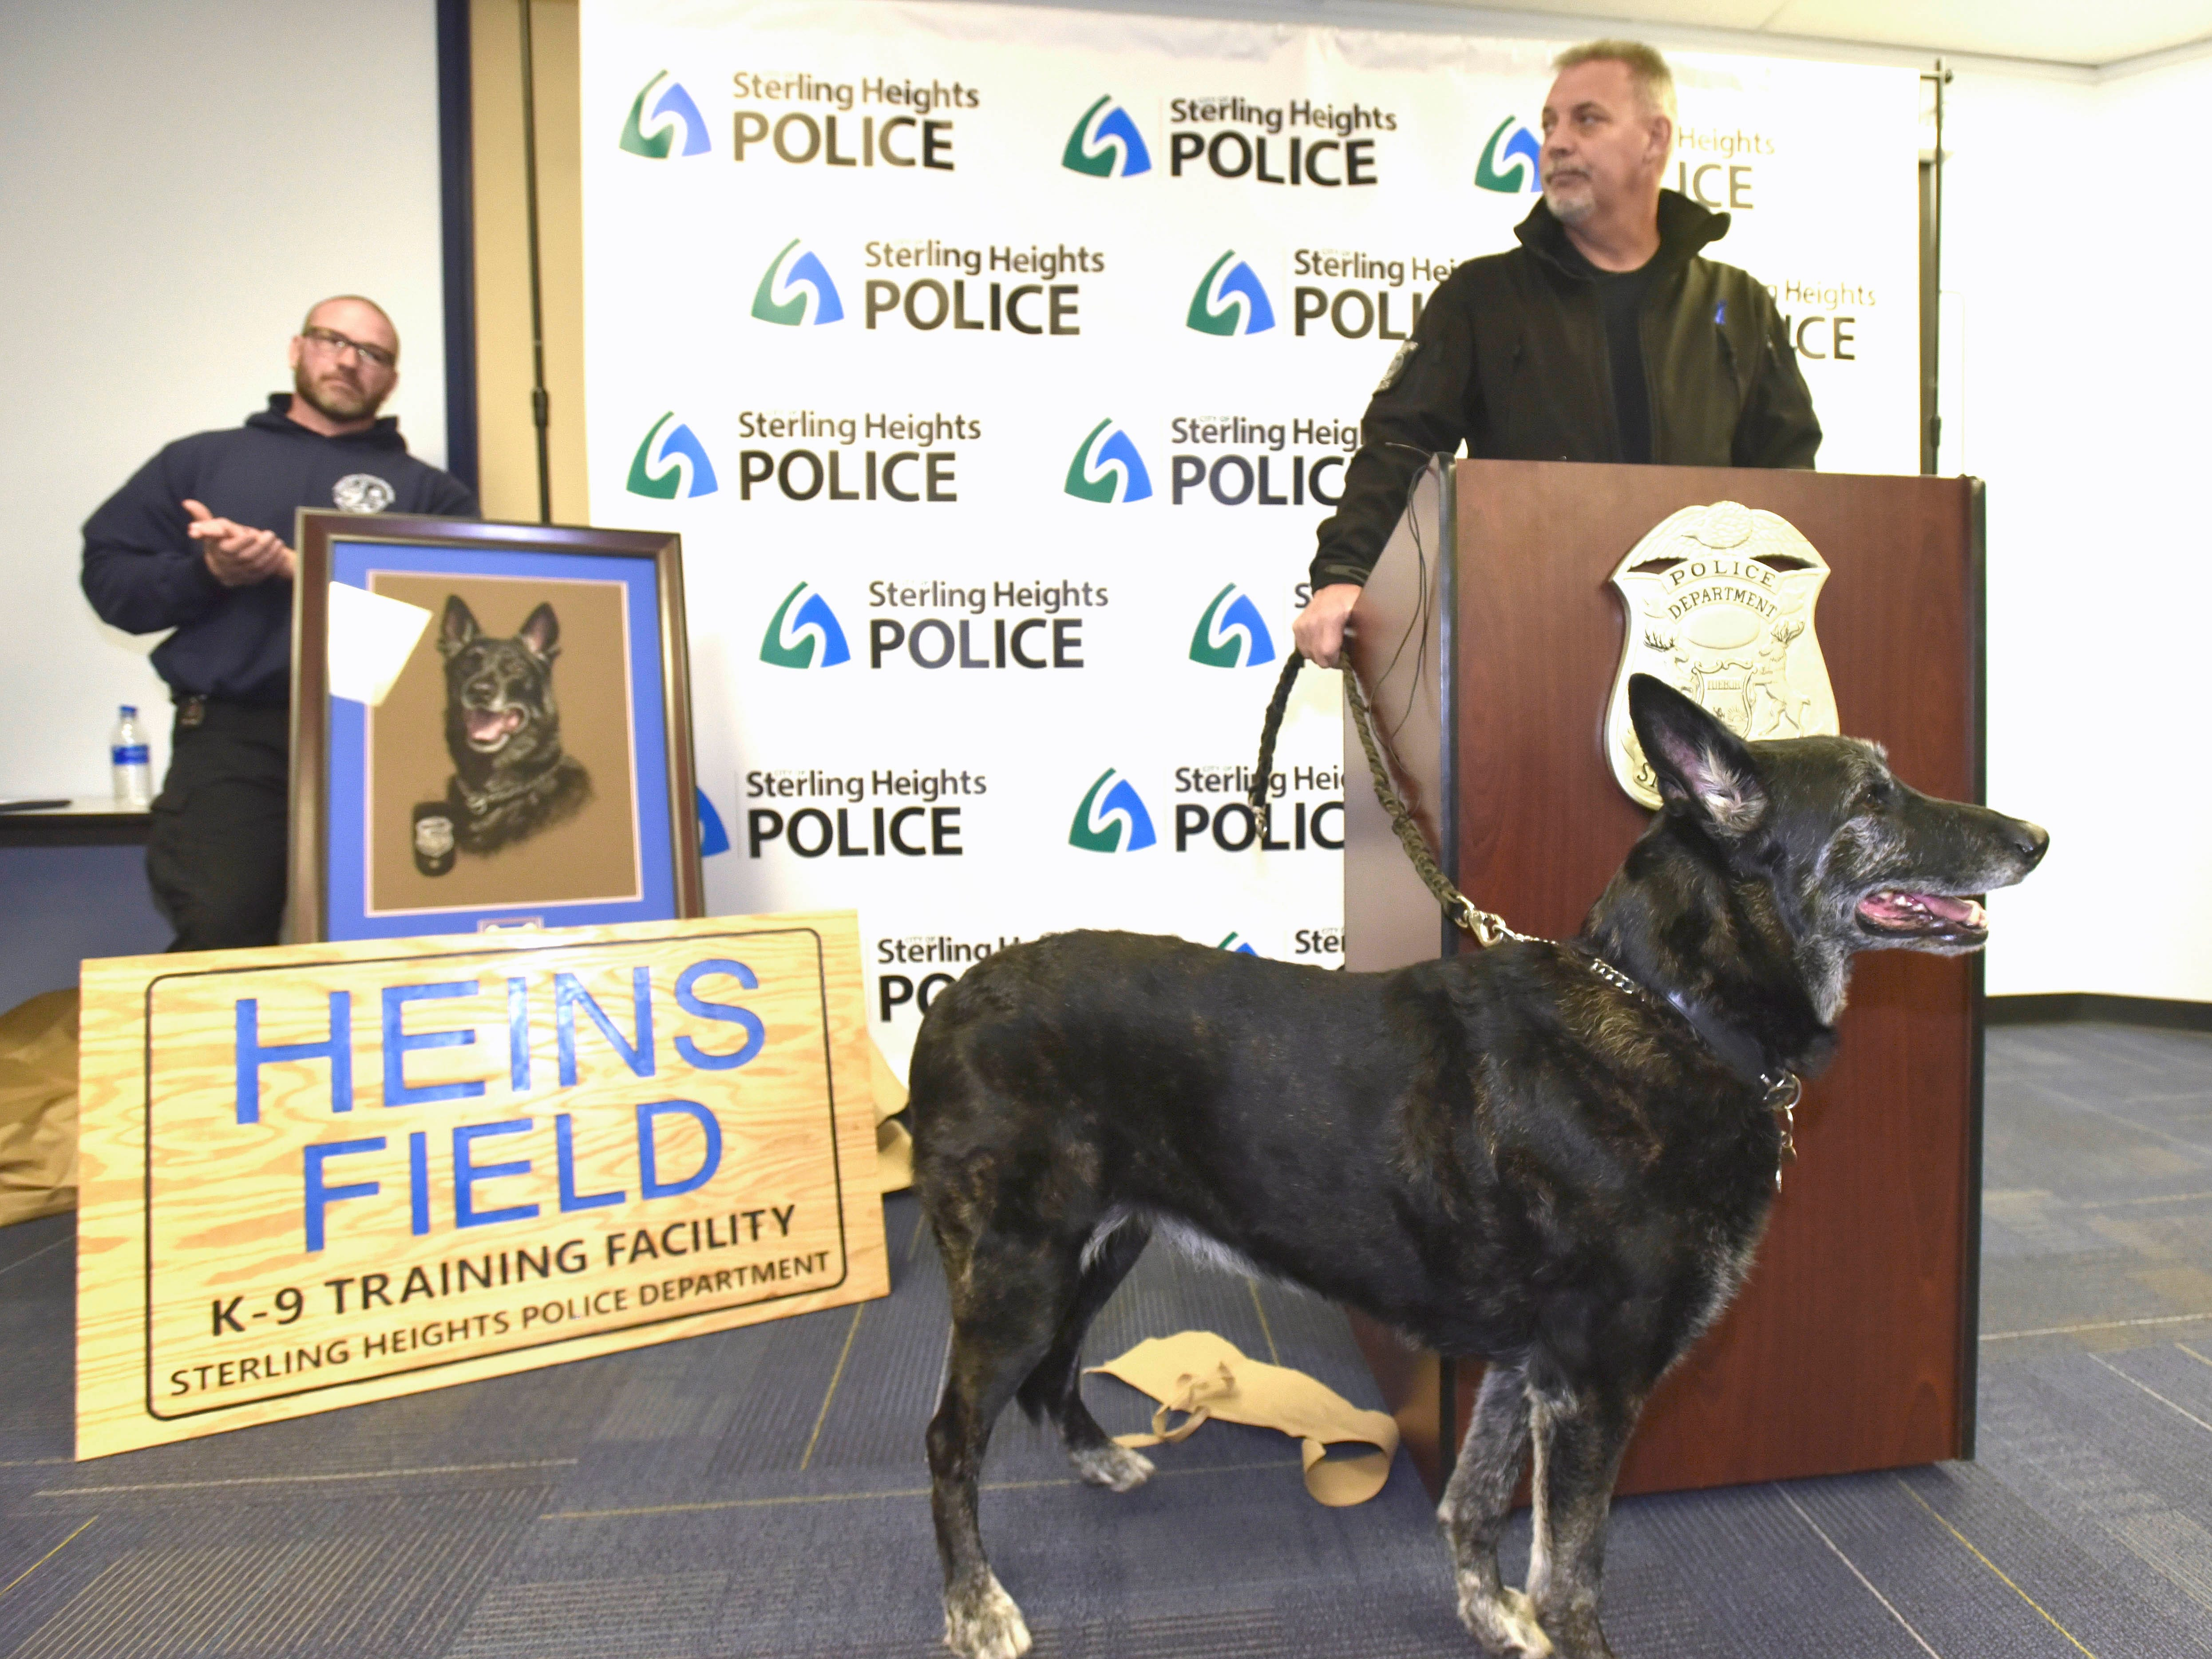 Sterling Heights Police K-9 Officer Rich Heins thanks everyone for attending Chase's retirement.